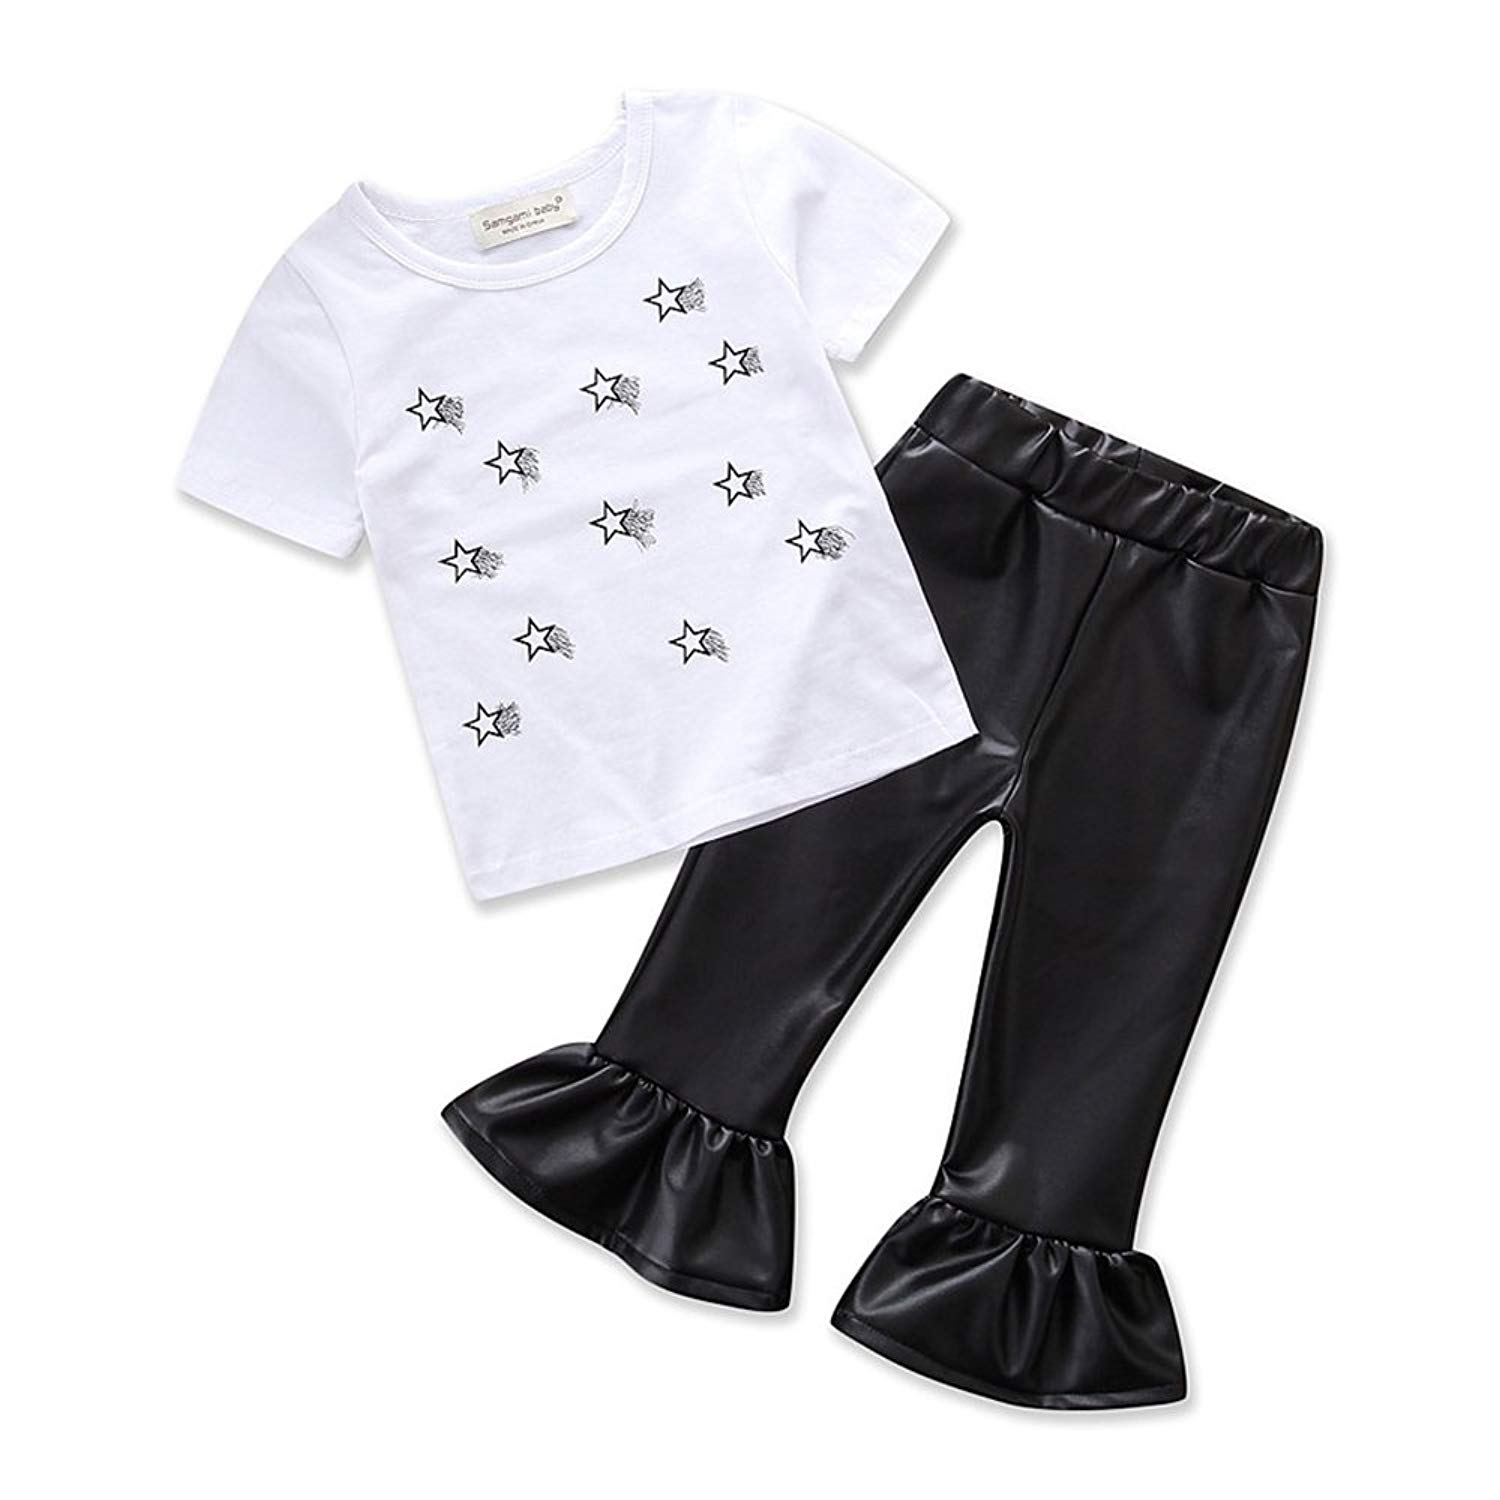 5c6019423b0d Cheap Baby T Shirt Printing Uk, find Baby T Shirt Printing Uk deals ...